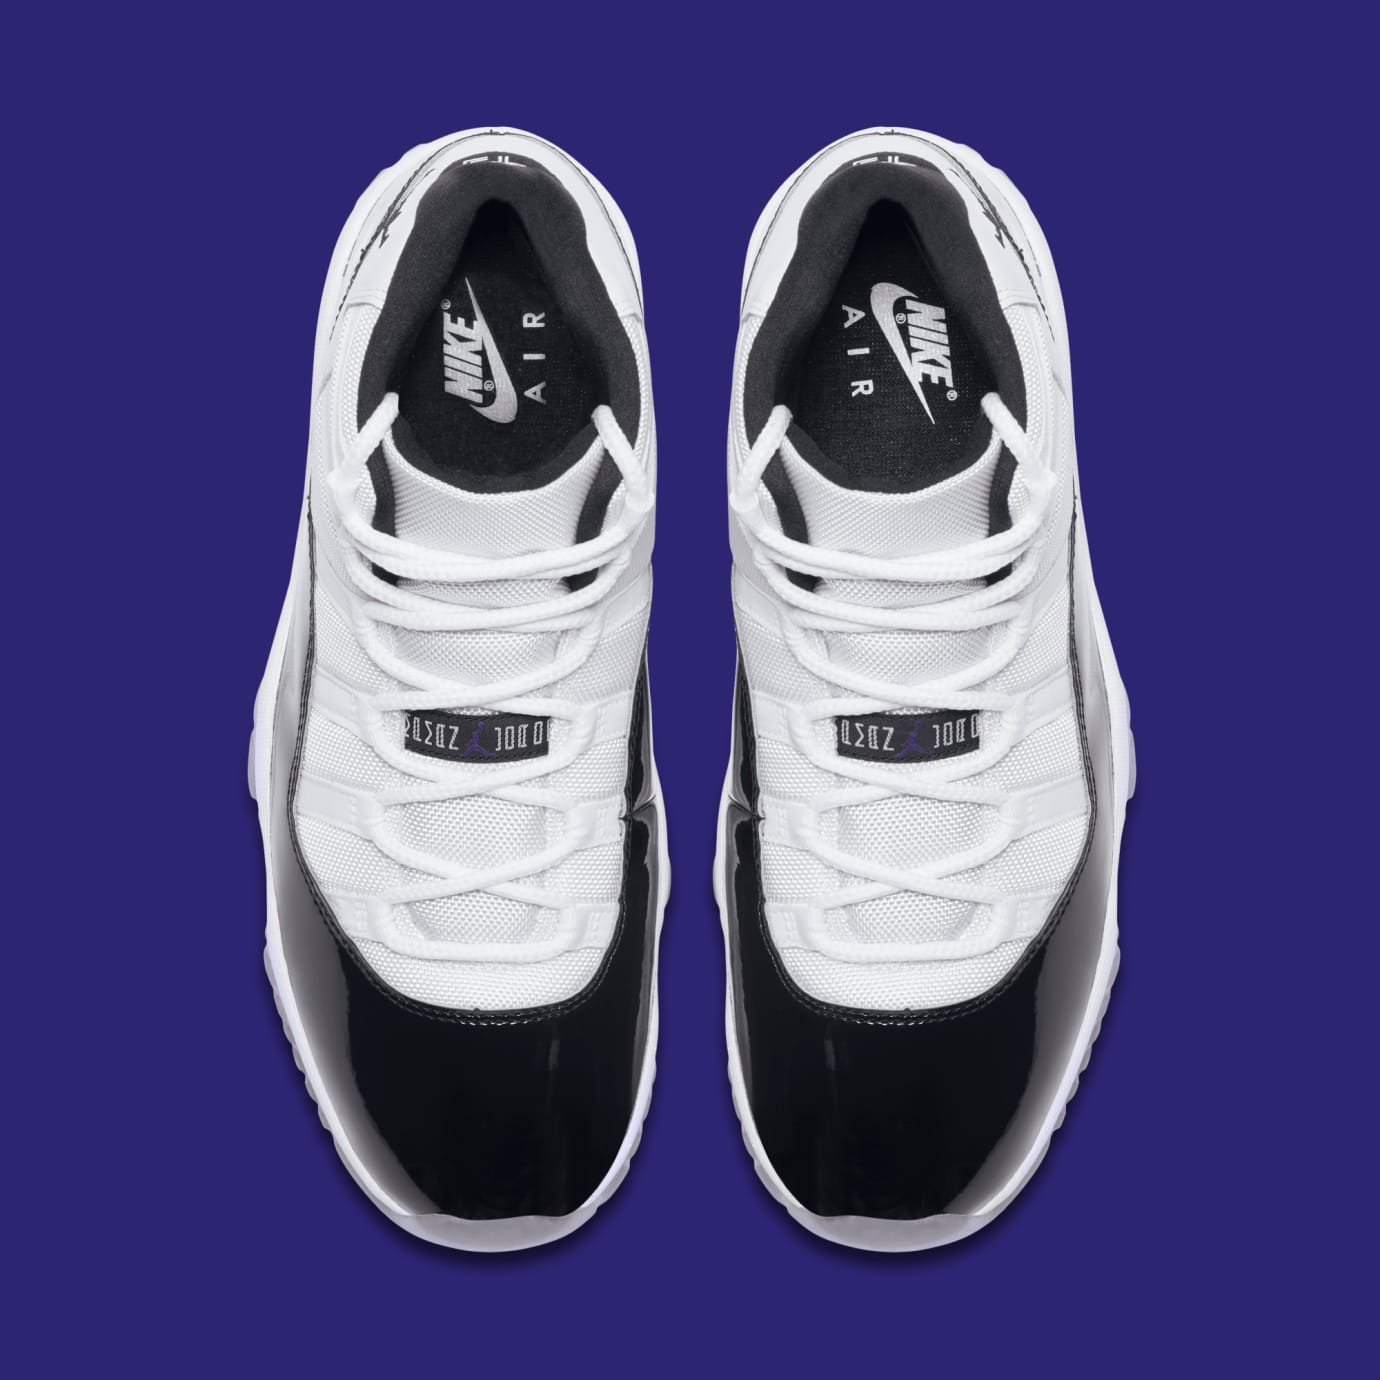 9dc73fc01fec Image via Nike Air Jordan 11  Concord  378037-100 (Top)